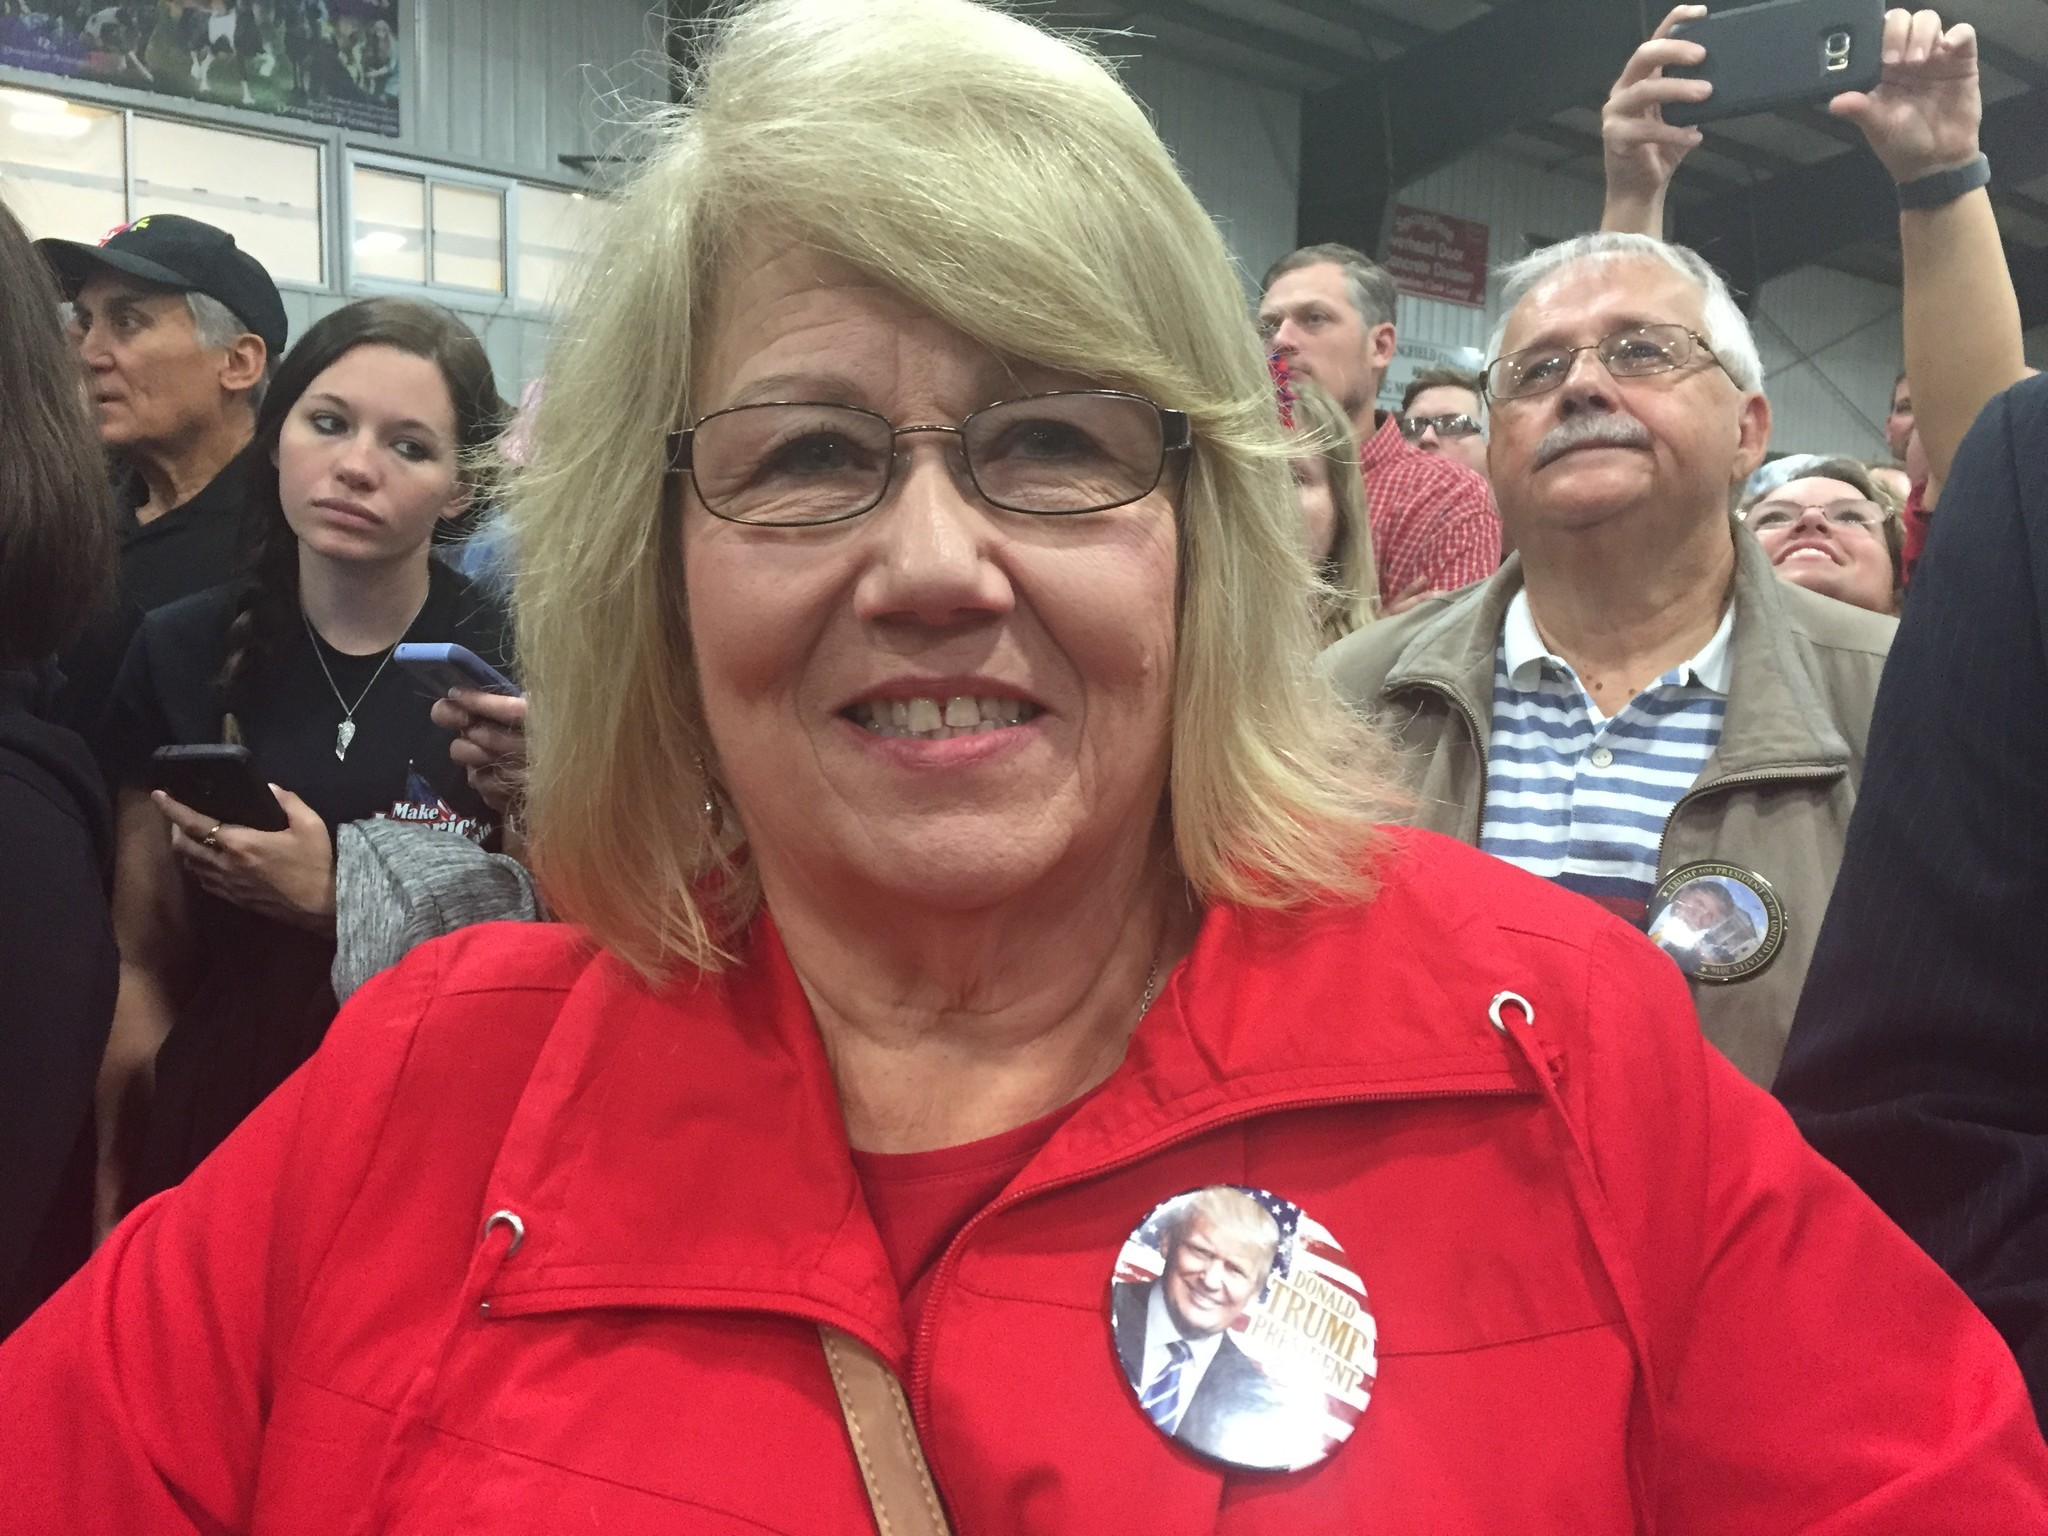 Stephanie Moore sports a Donald Trump button at a rally in Springfield, Ohio.